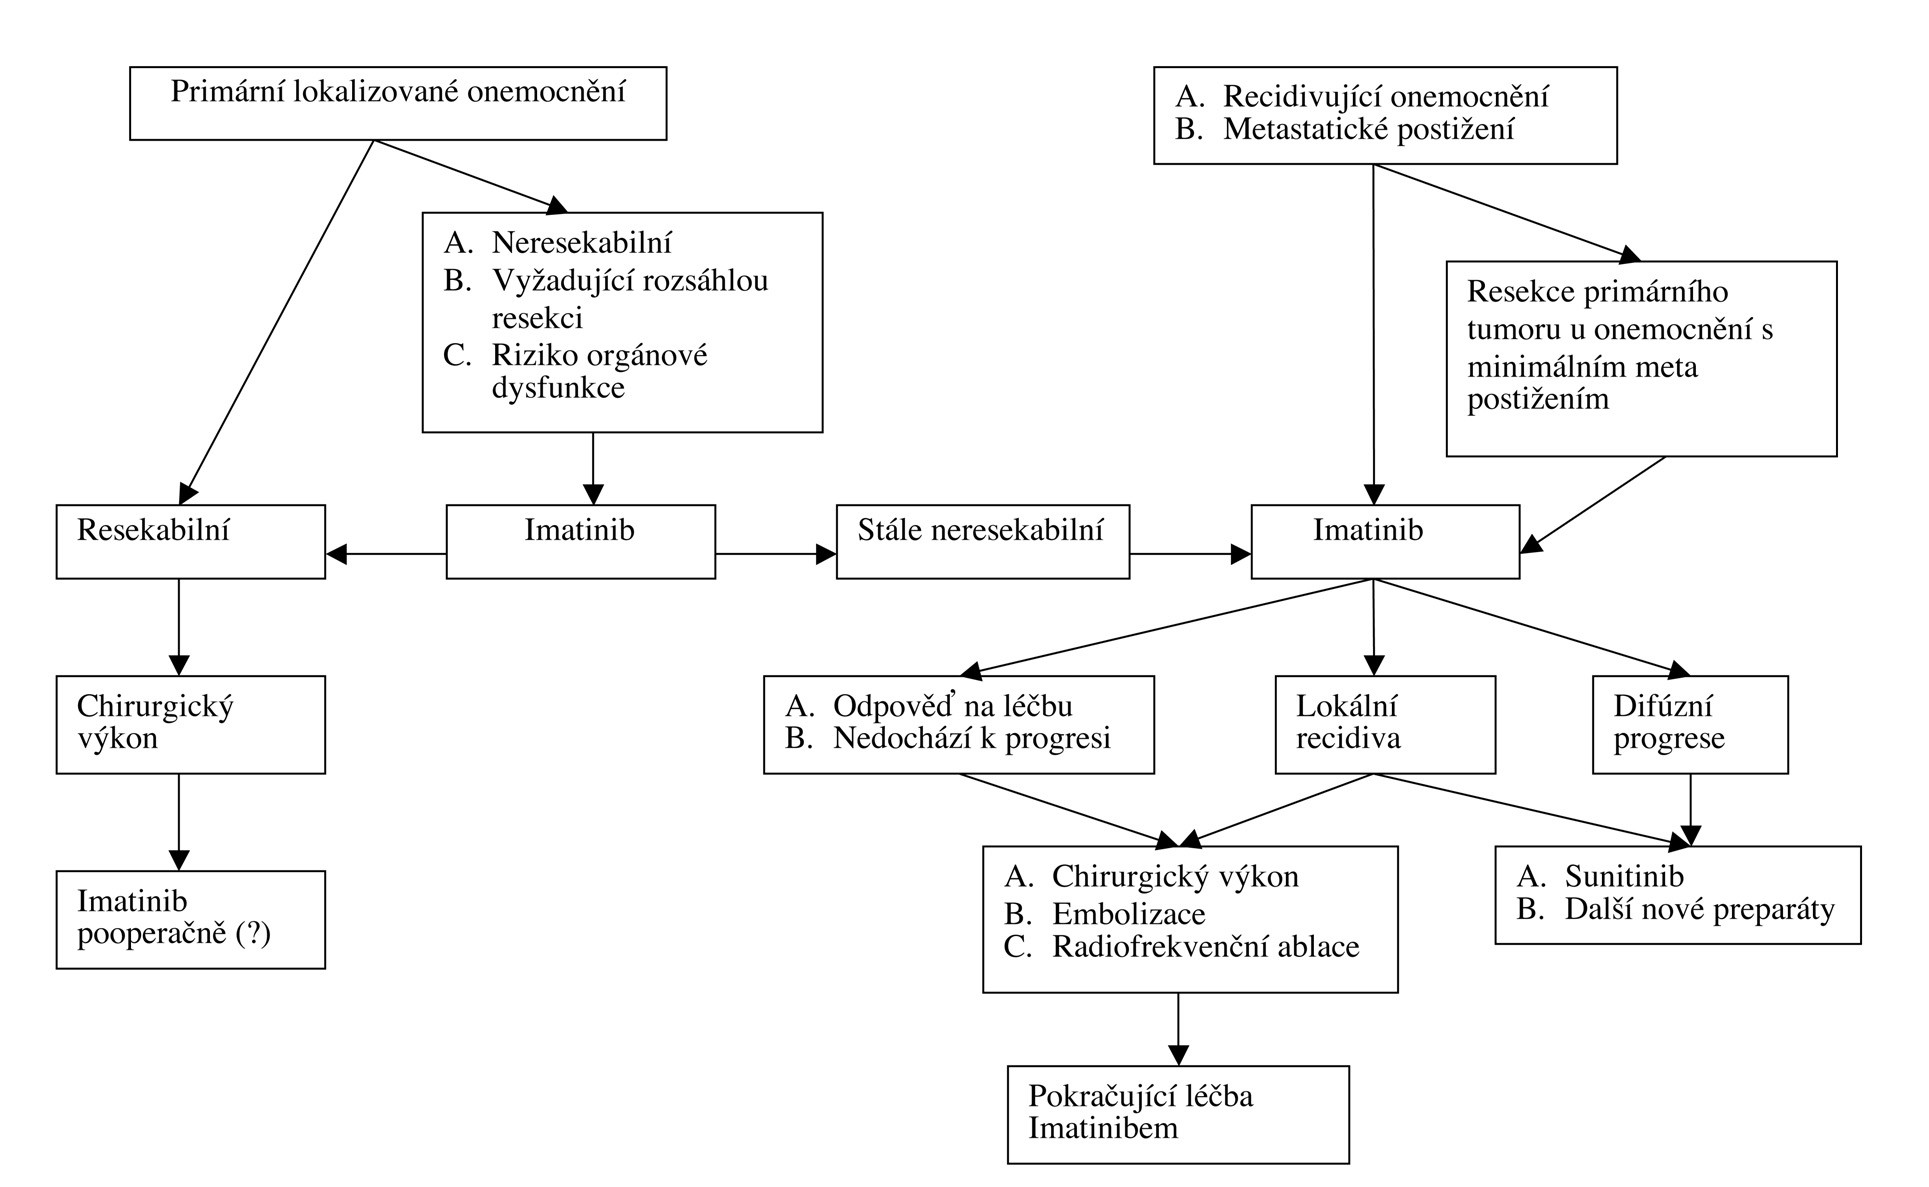 Algoritmus doporučeného léčebného postupu při postižení GIST – upraveno dle Gold & DeMateo [54]